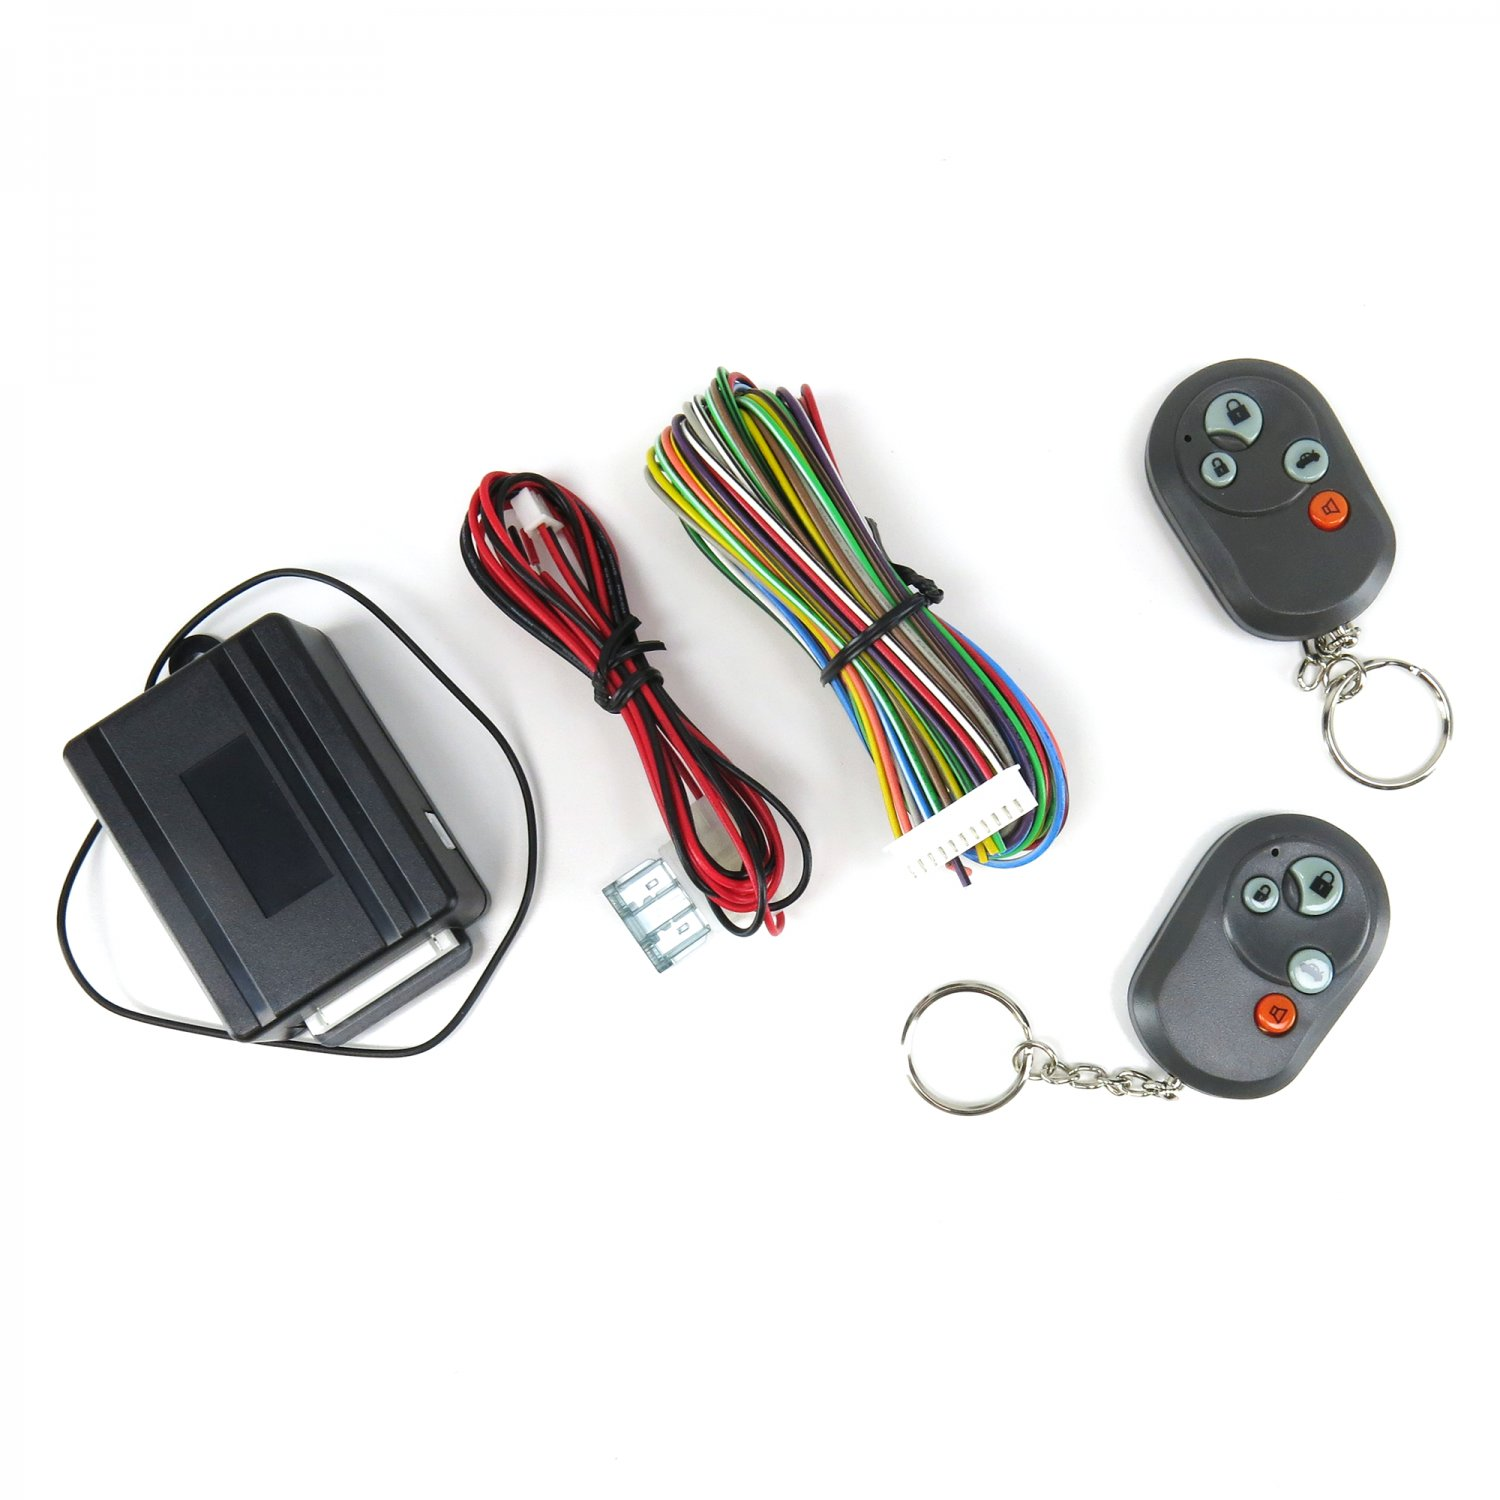 Remote Keyless Entry Door Lock Unlock Kit Dodge V6 302 V8 350 Chevy Wiring Harness Jeep Standard Features